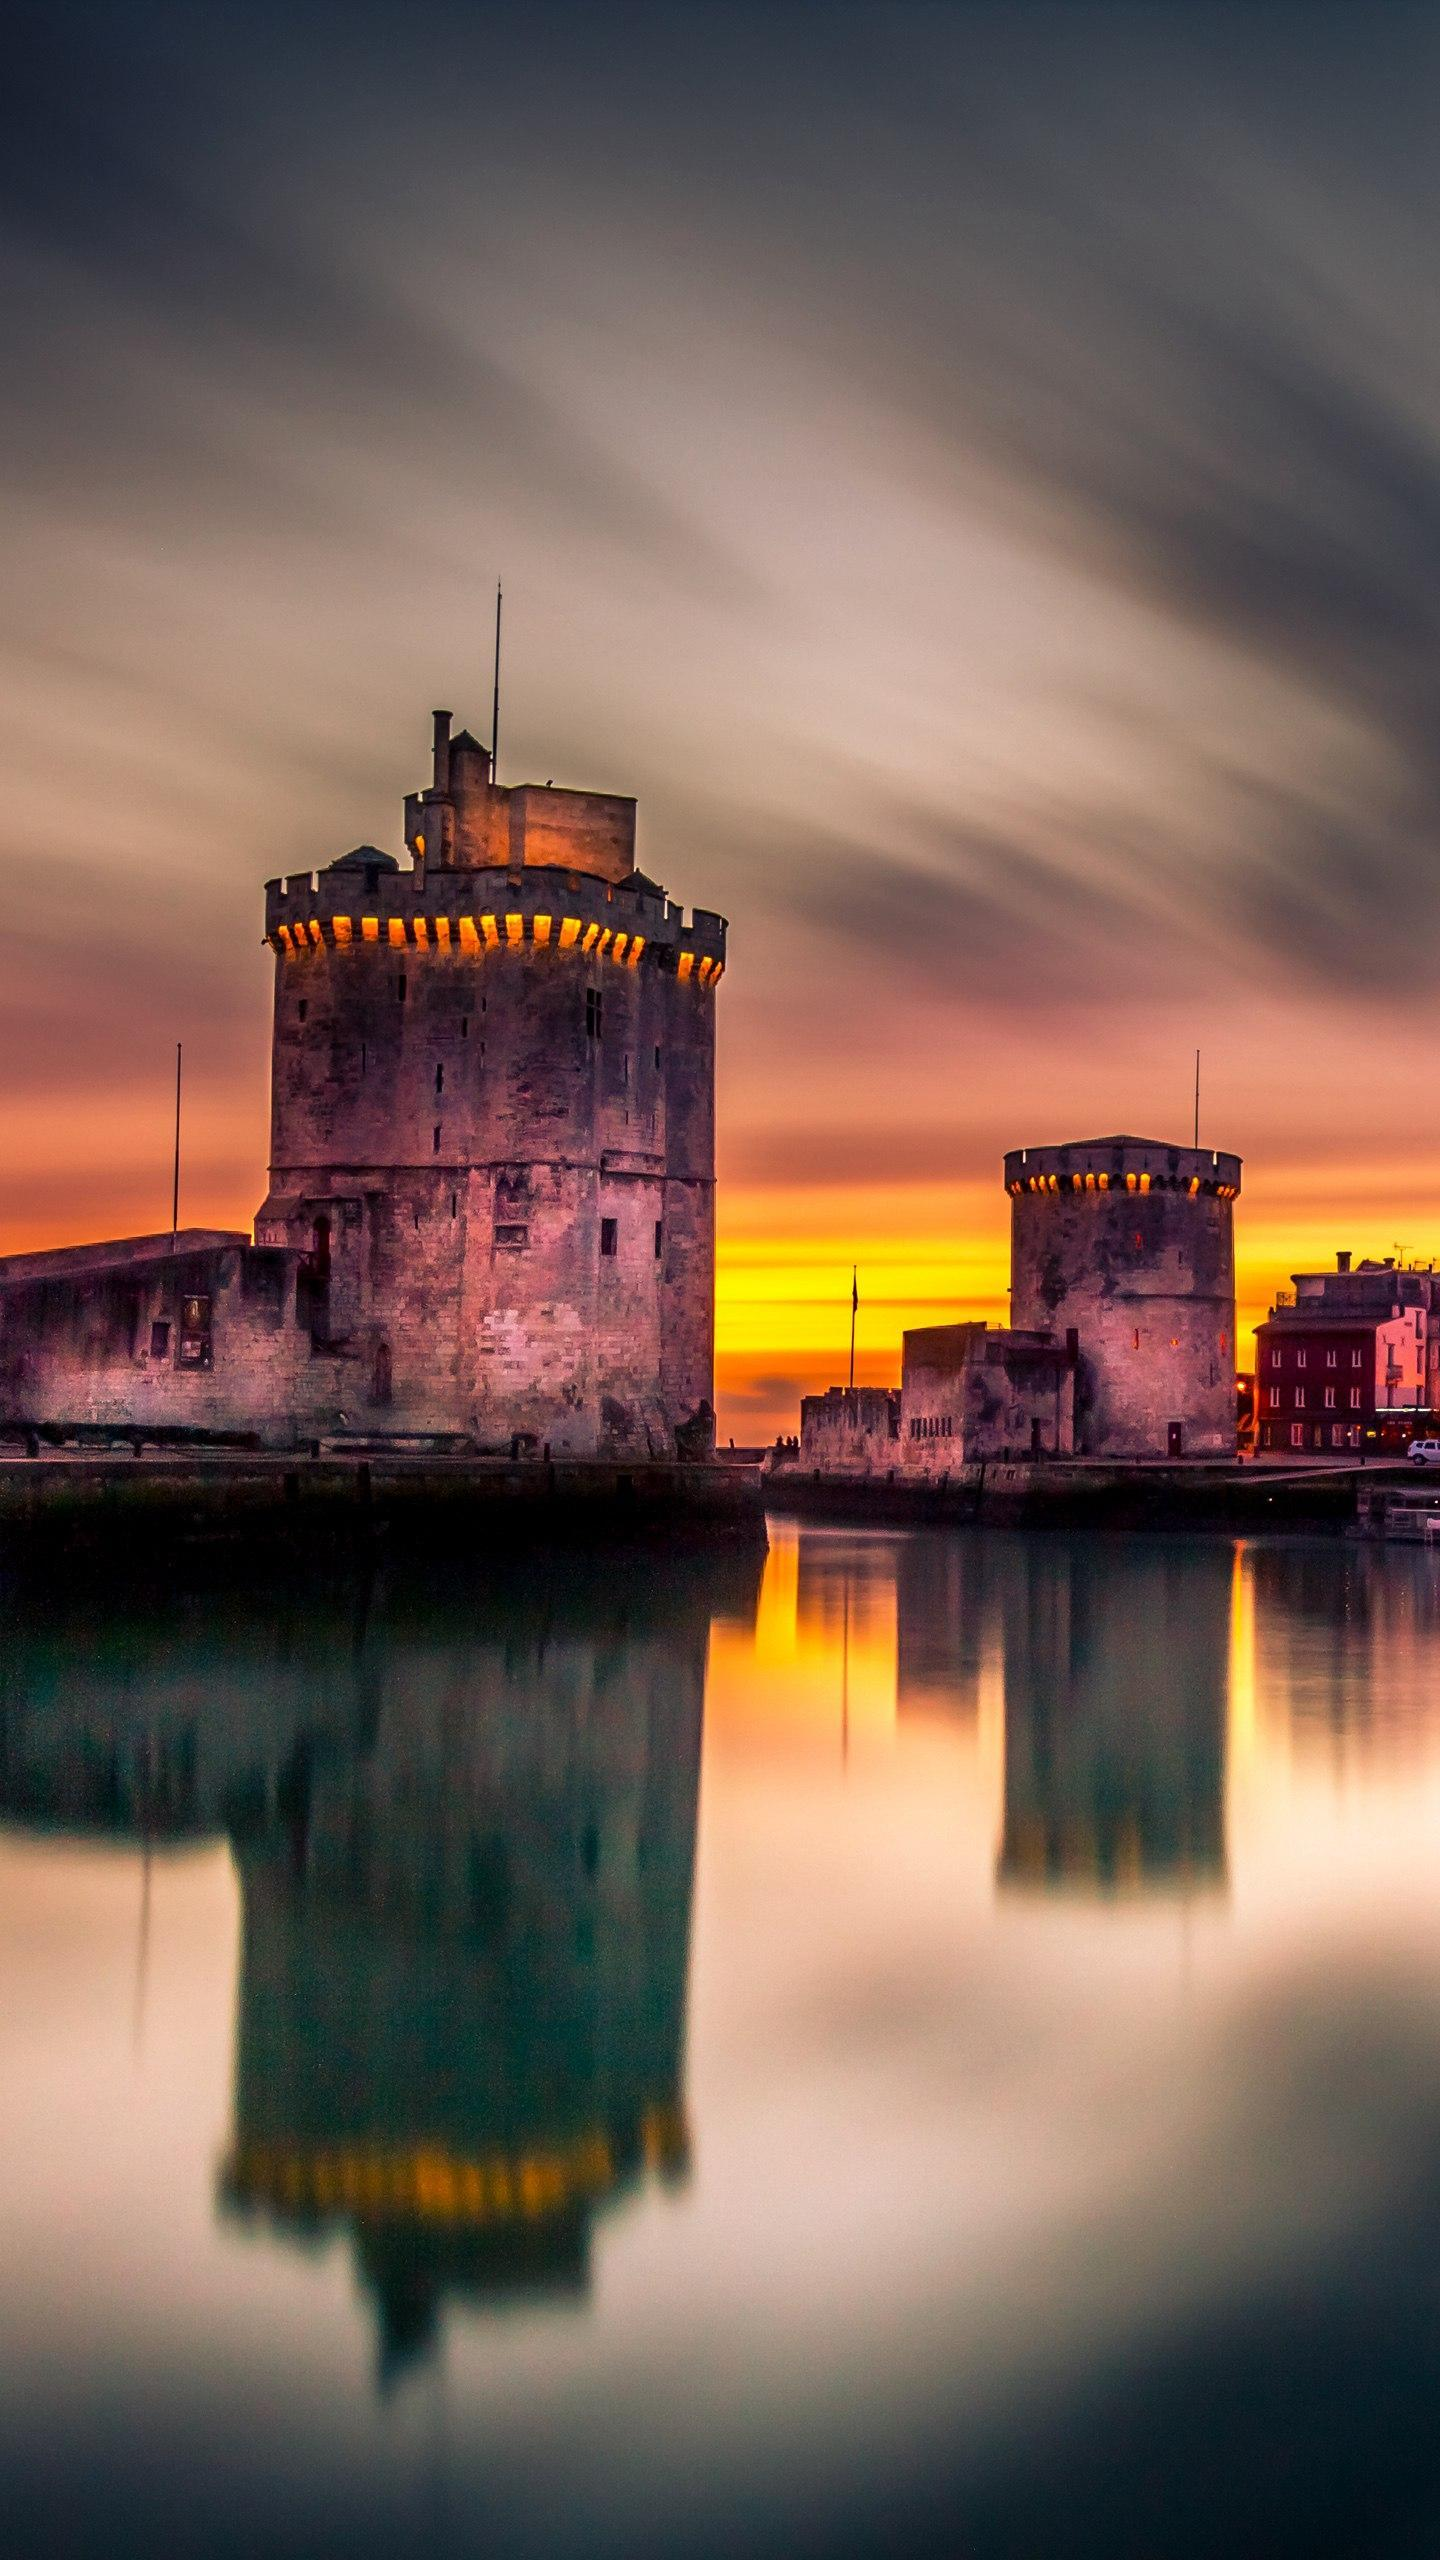 France - La Rochelle. Known as the city with the most beautiful sea views in France, it has a charming scenery and a long history.